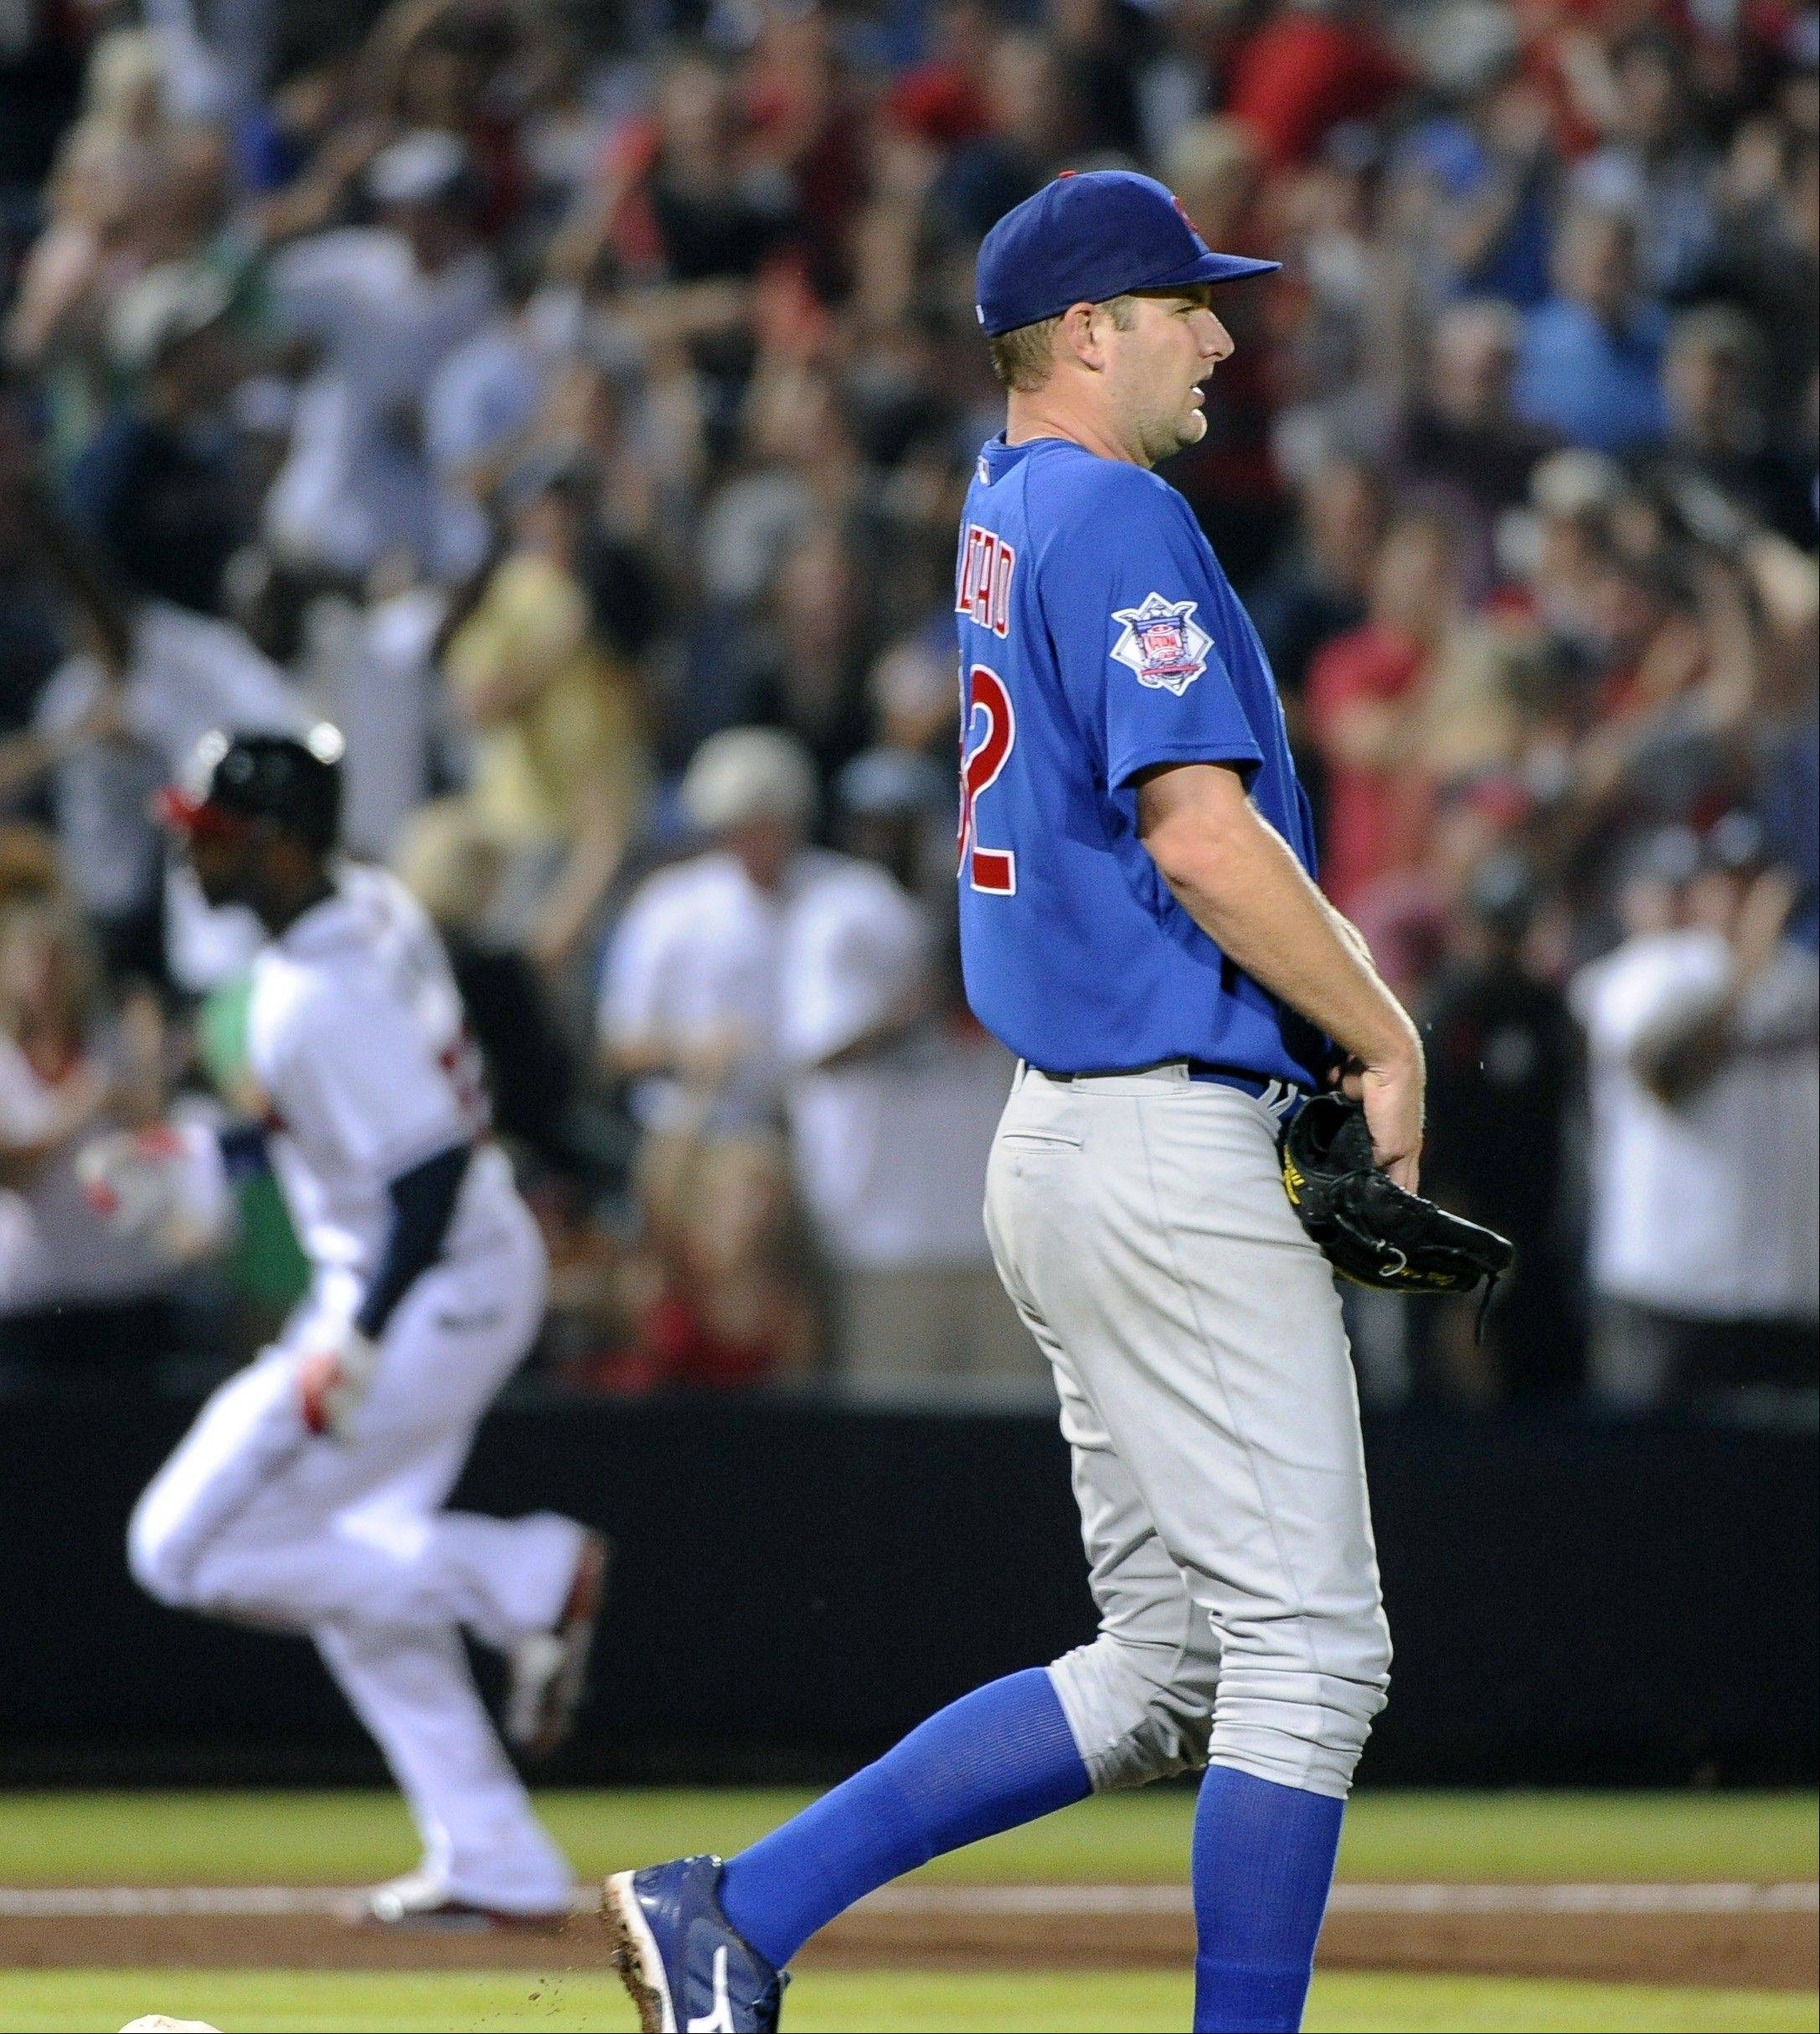 Cubs starting pitcher Chris Volstad walks near the mound Tuesday after giving up a home run to Atlanta Braves right fielder Jason Heyward, rear, during the fifth inning at Turner Field in Atlanta.